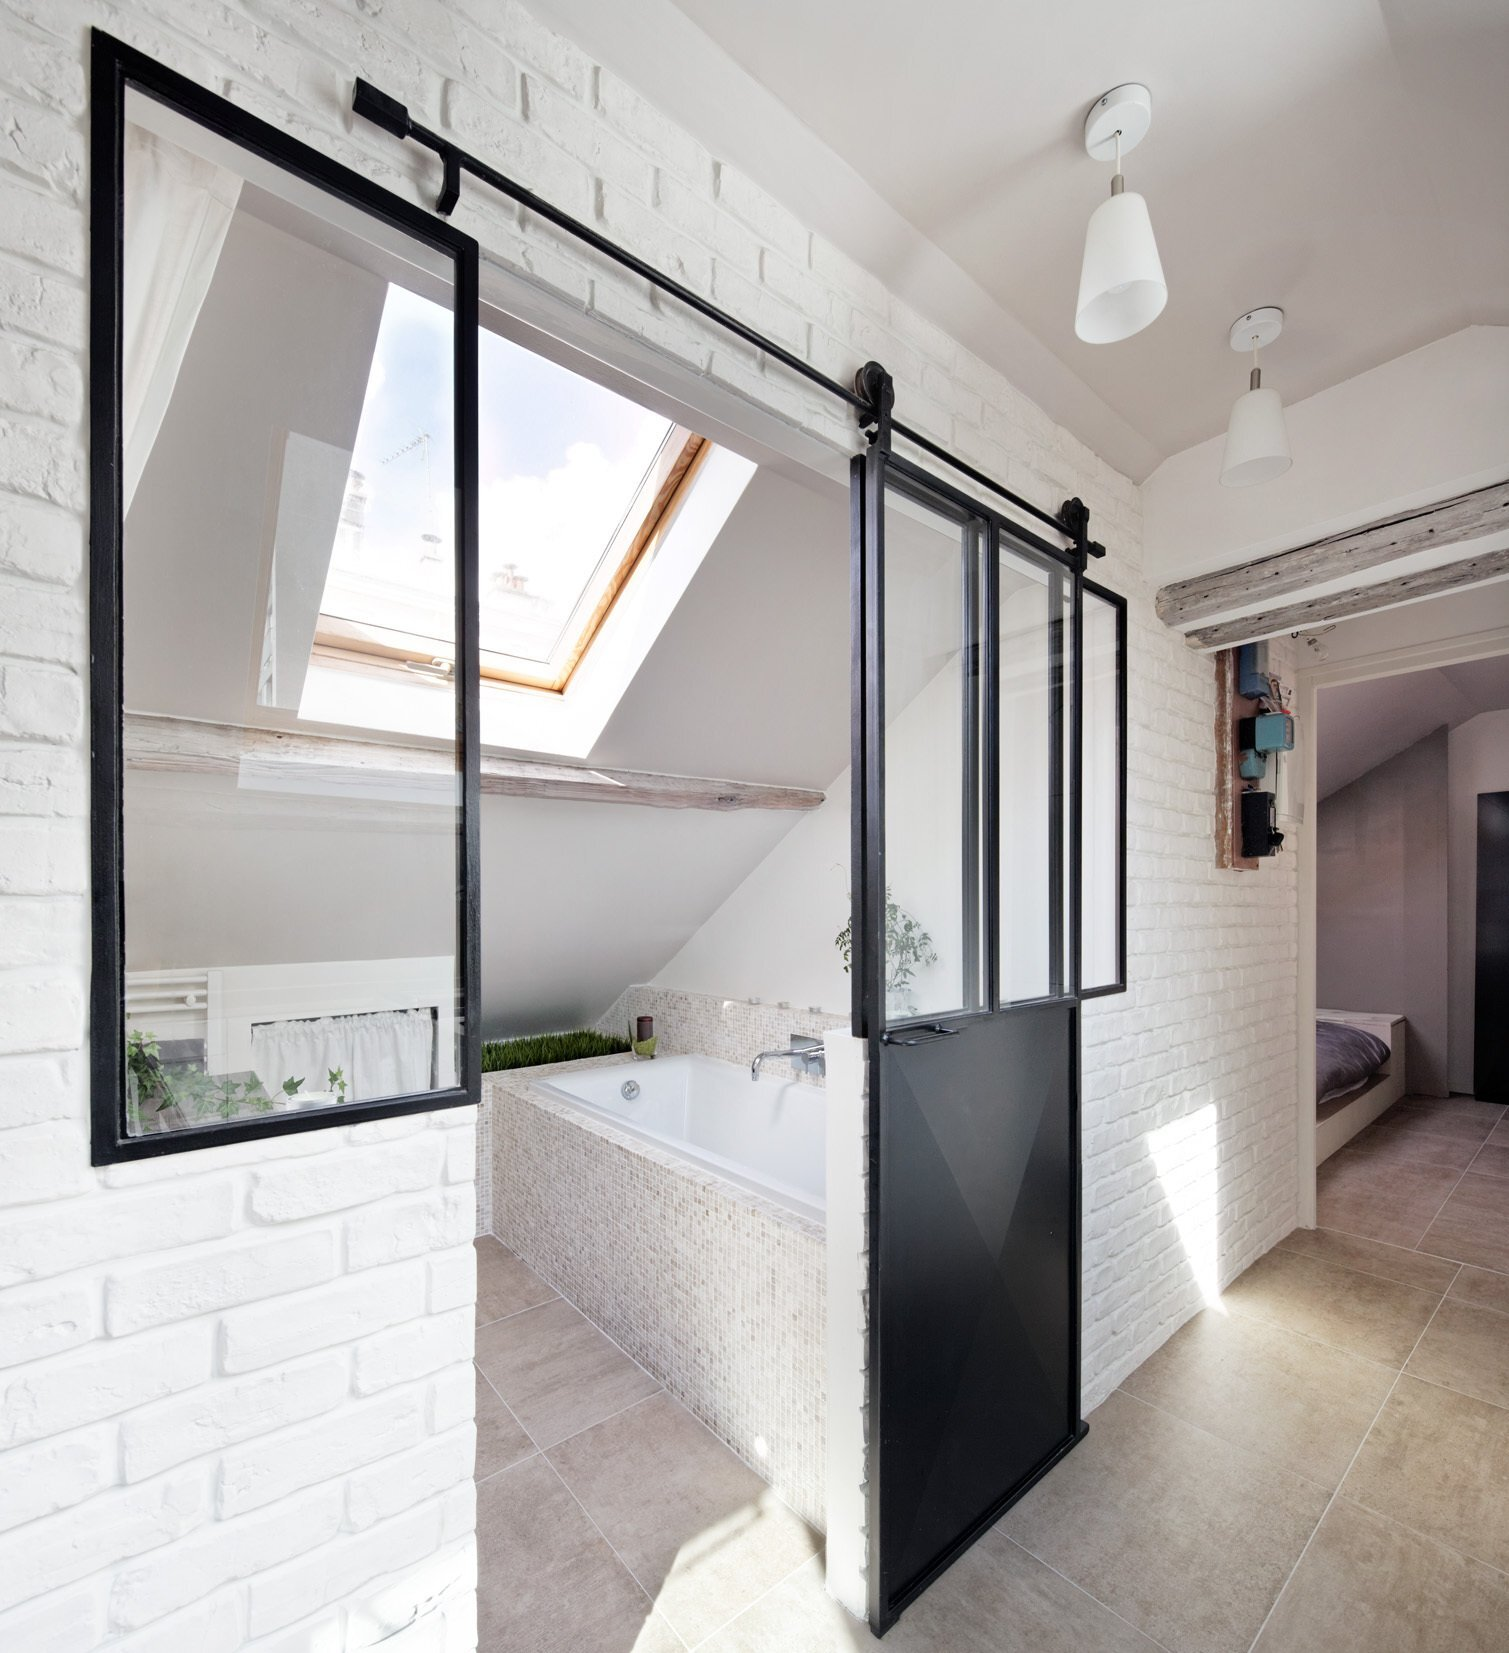 Living Under the Roof - Prisca Pellerin - France - Bathroom - Humble Homes